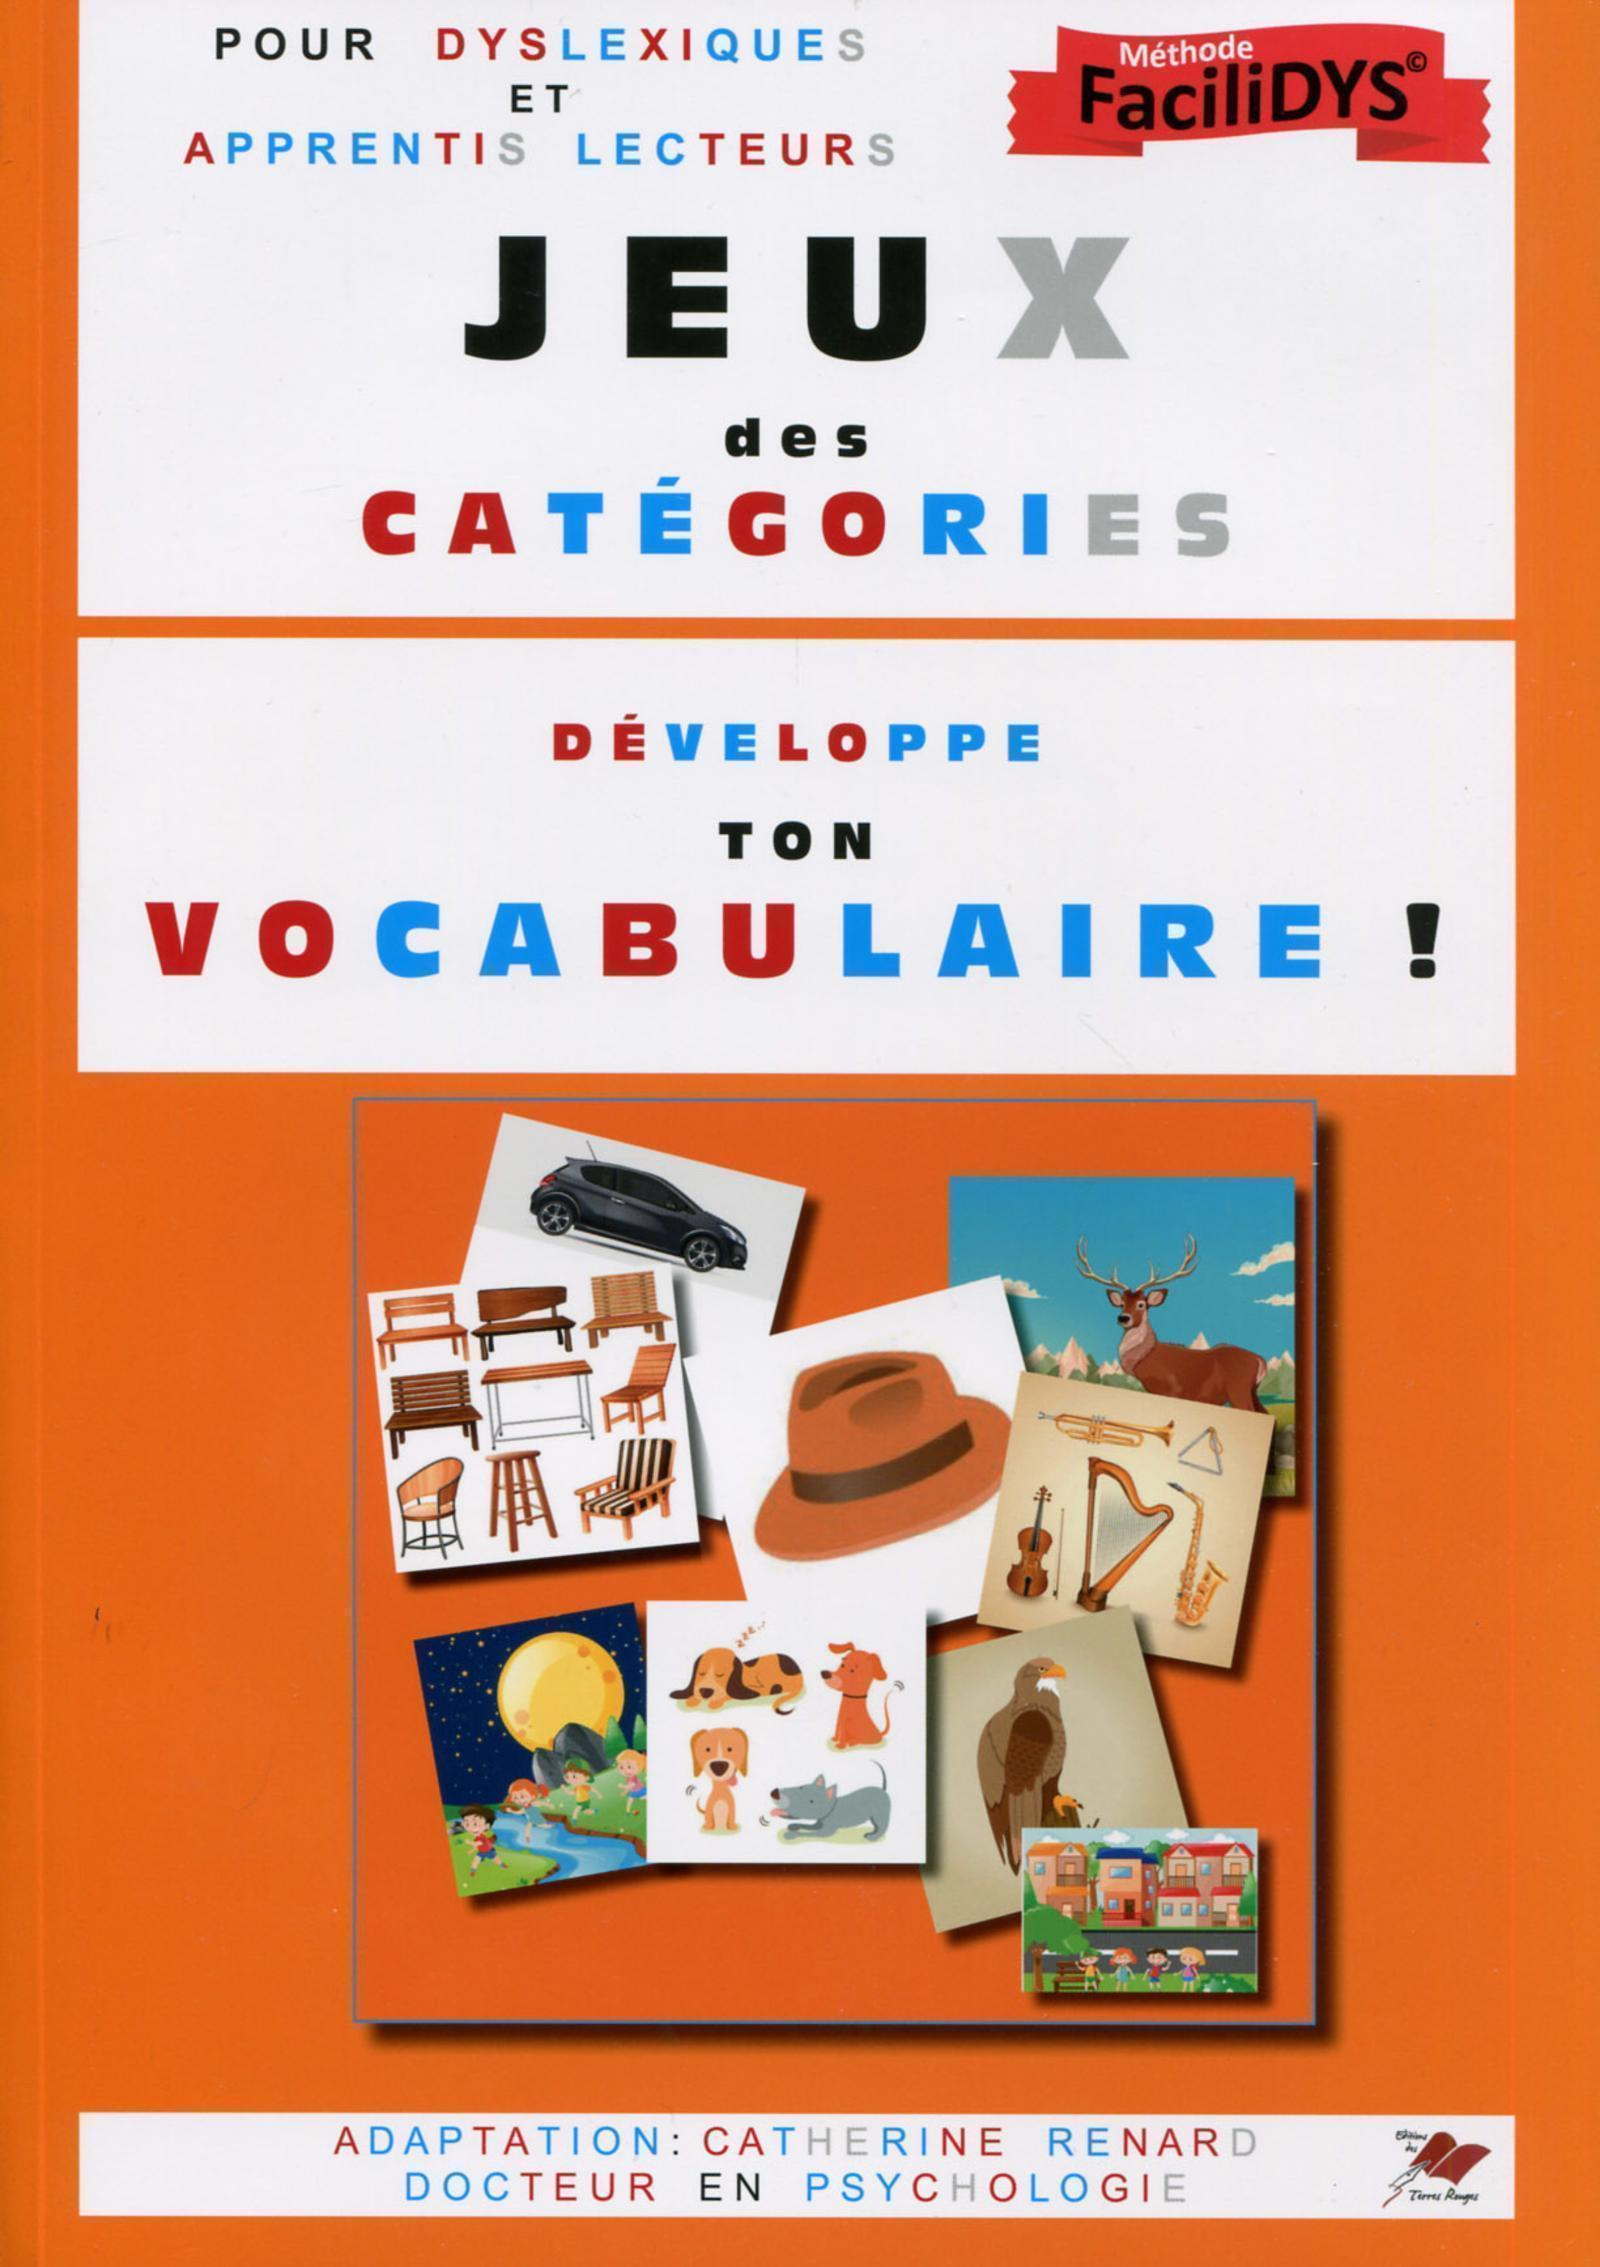 JEUX DES CATEGORIES